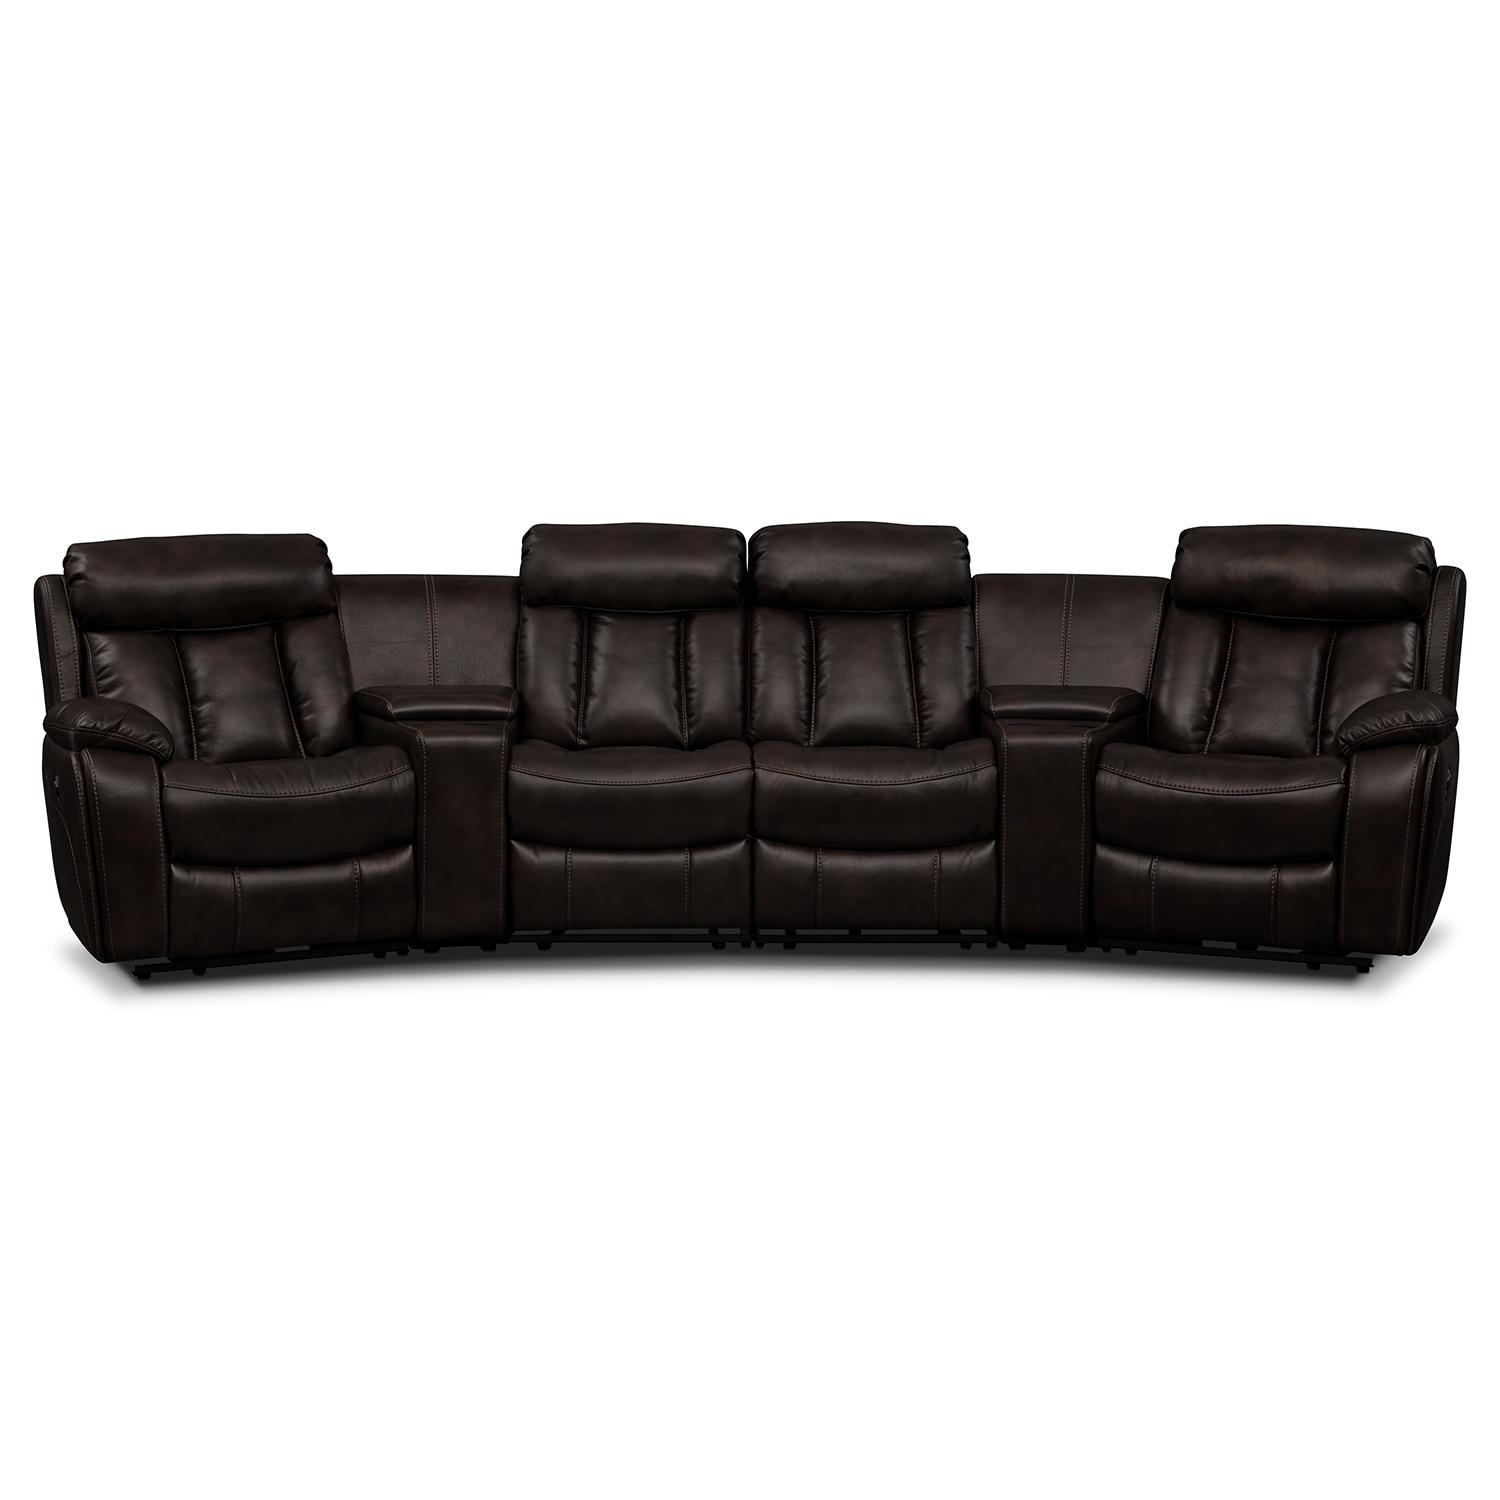 Sectionals With Cup Holders – Marketing Module | Value City Furniture With Sectional With Cup Holders (View 17 of 20)